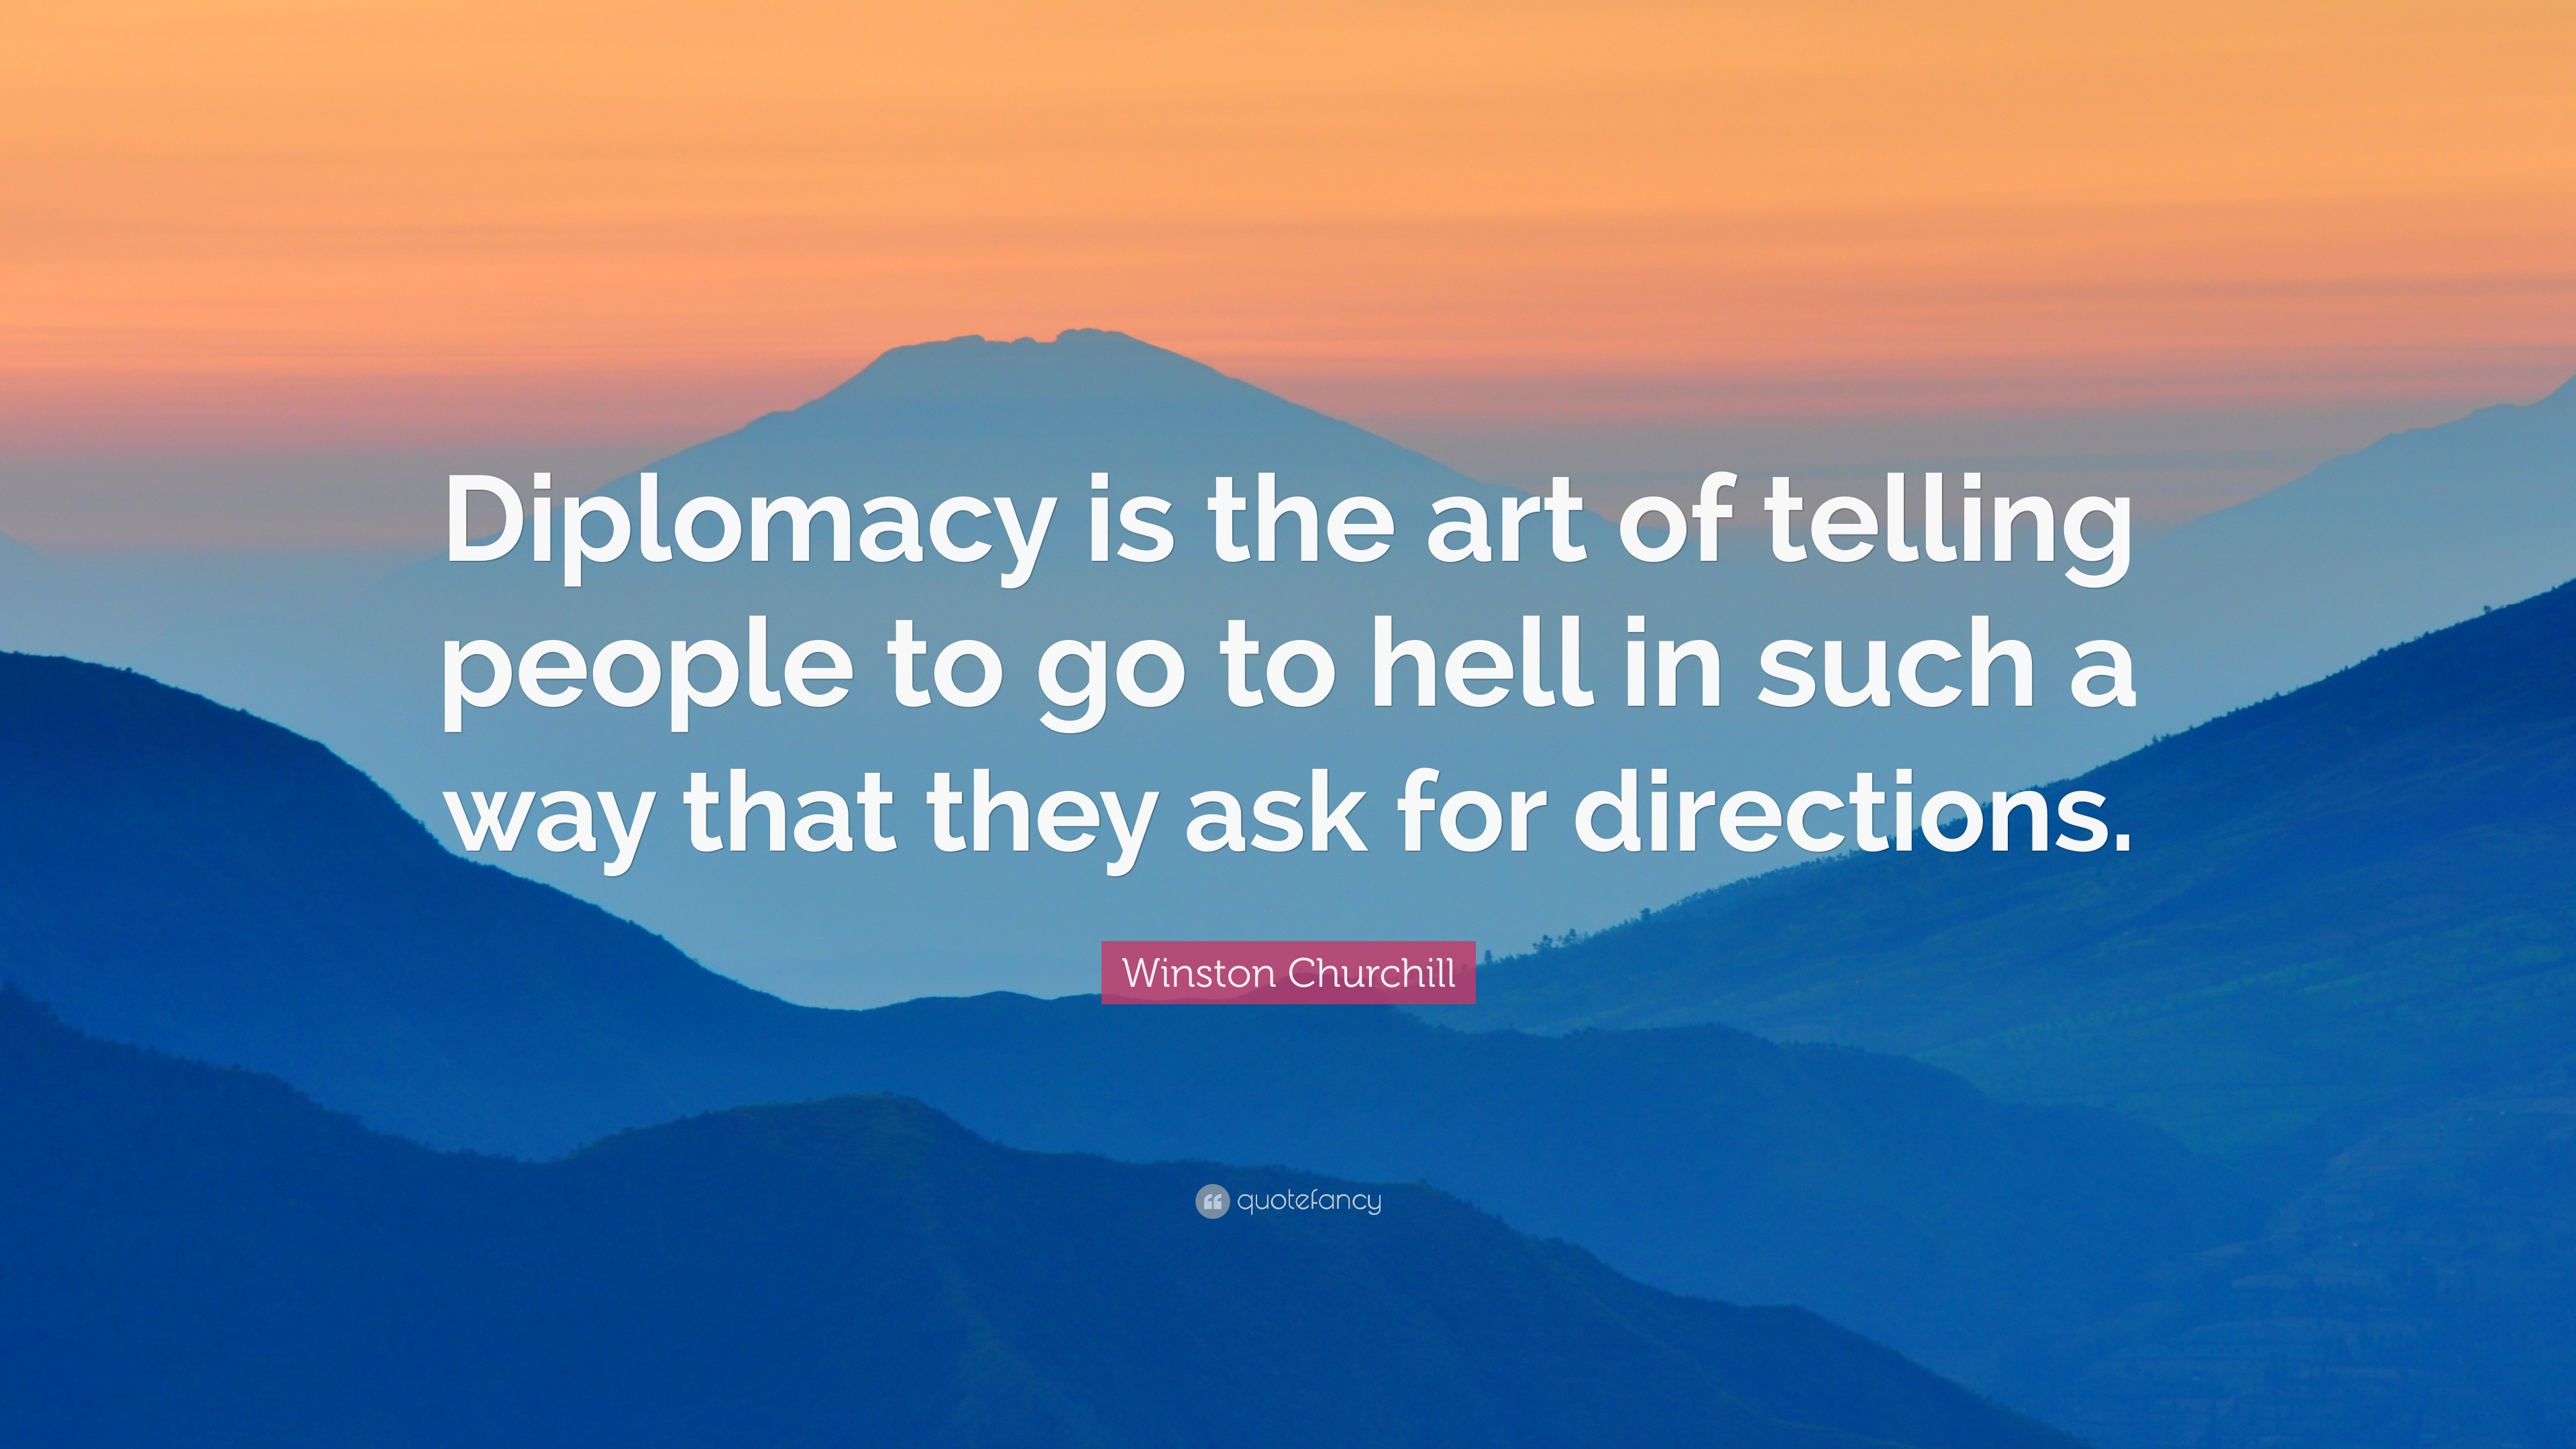 Winston Churchill Quote: Diplomacy is the art of telling people to ...